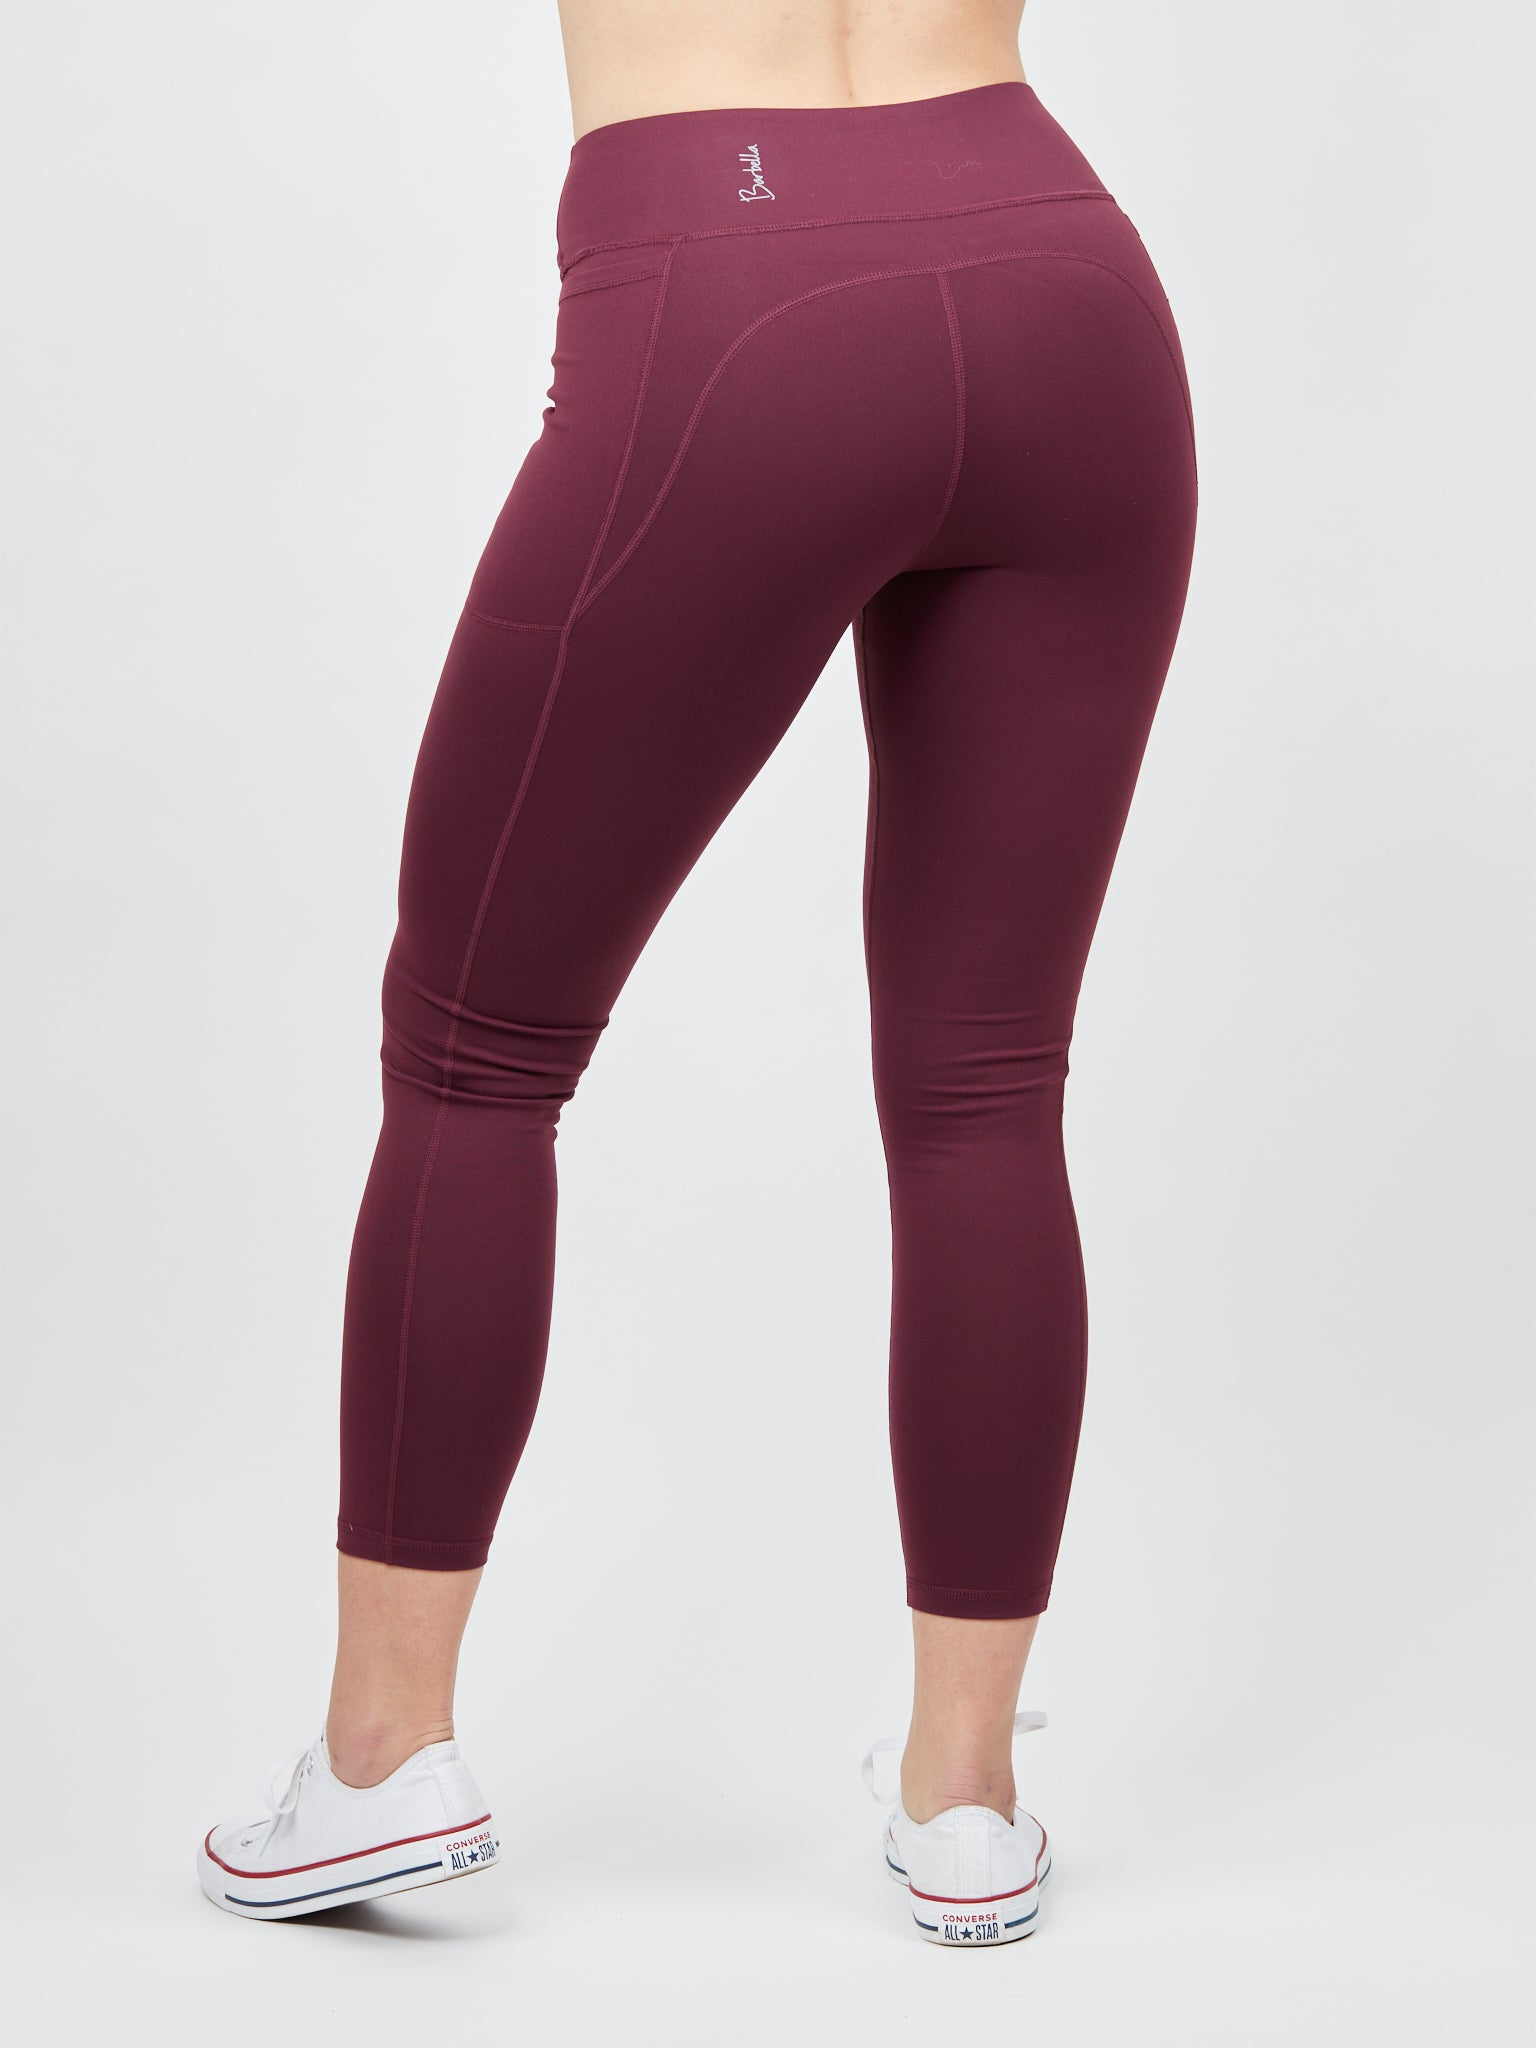 Kennedy Legging - Cranberry